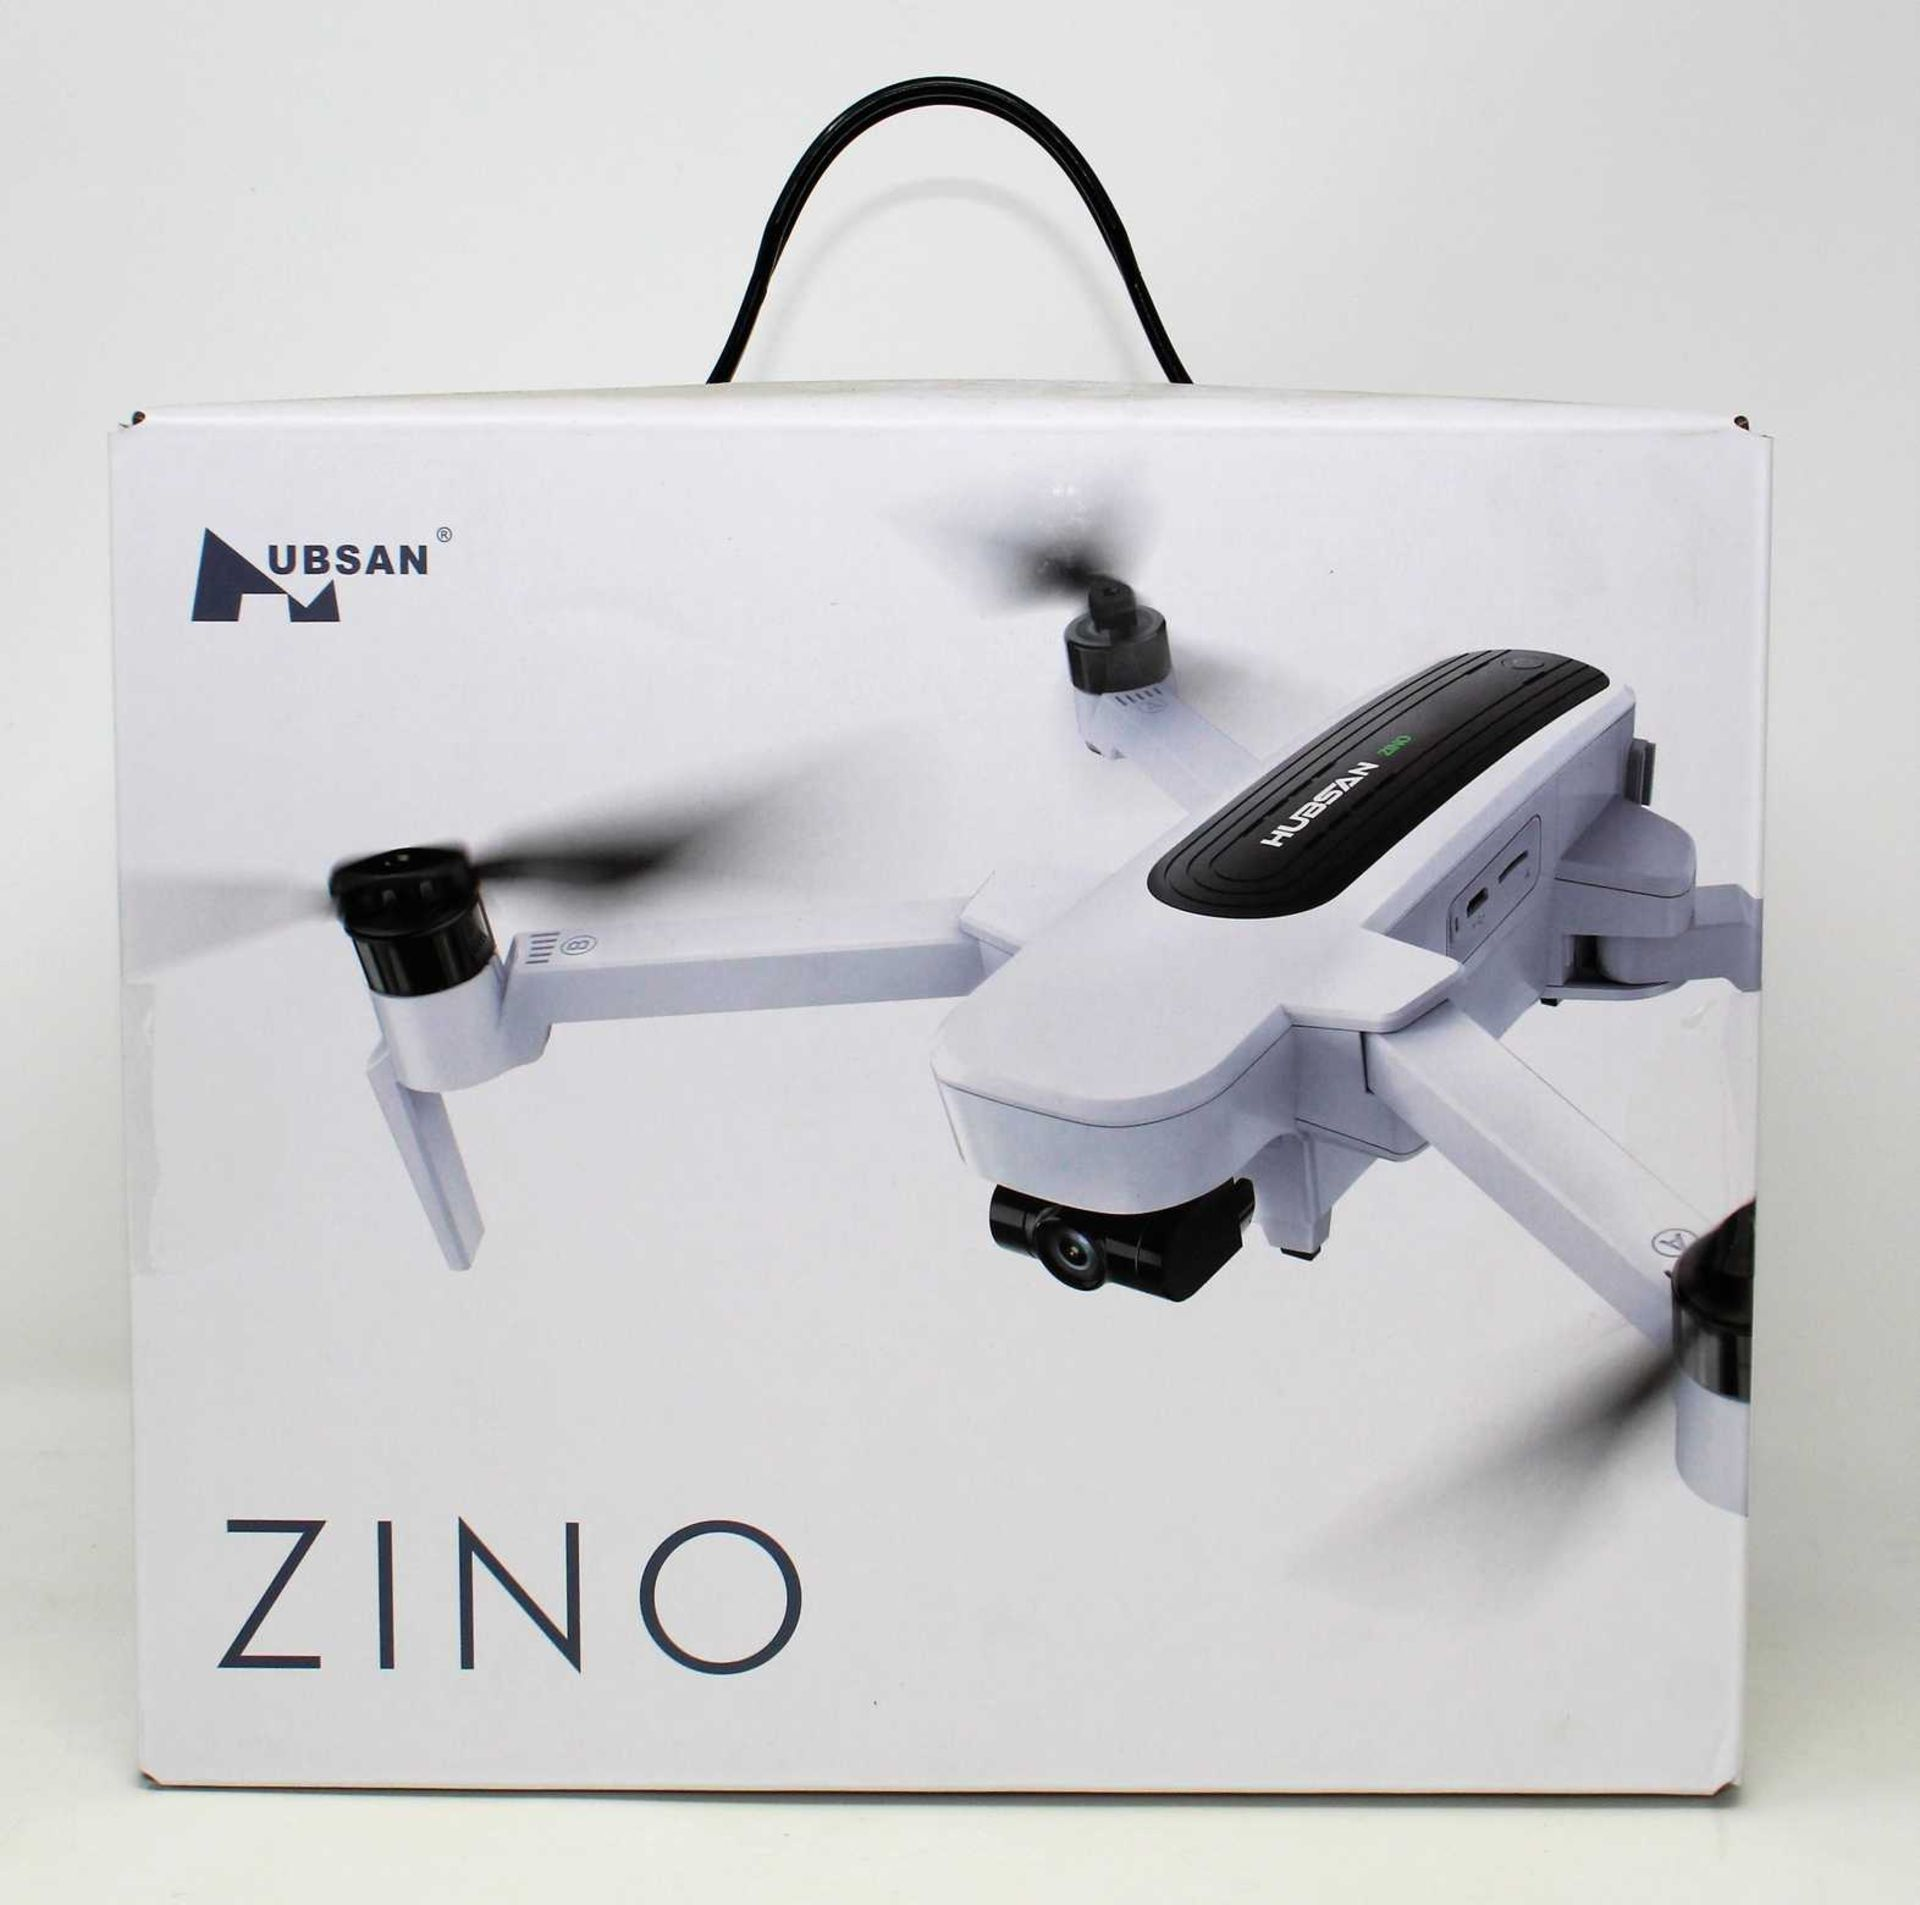 A boxed as new Hubsan Zino H117S Folding Quadcopter Drone (Box sealed. UK plug adapter required).